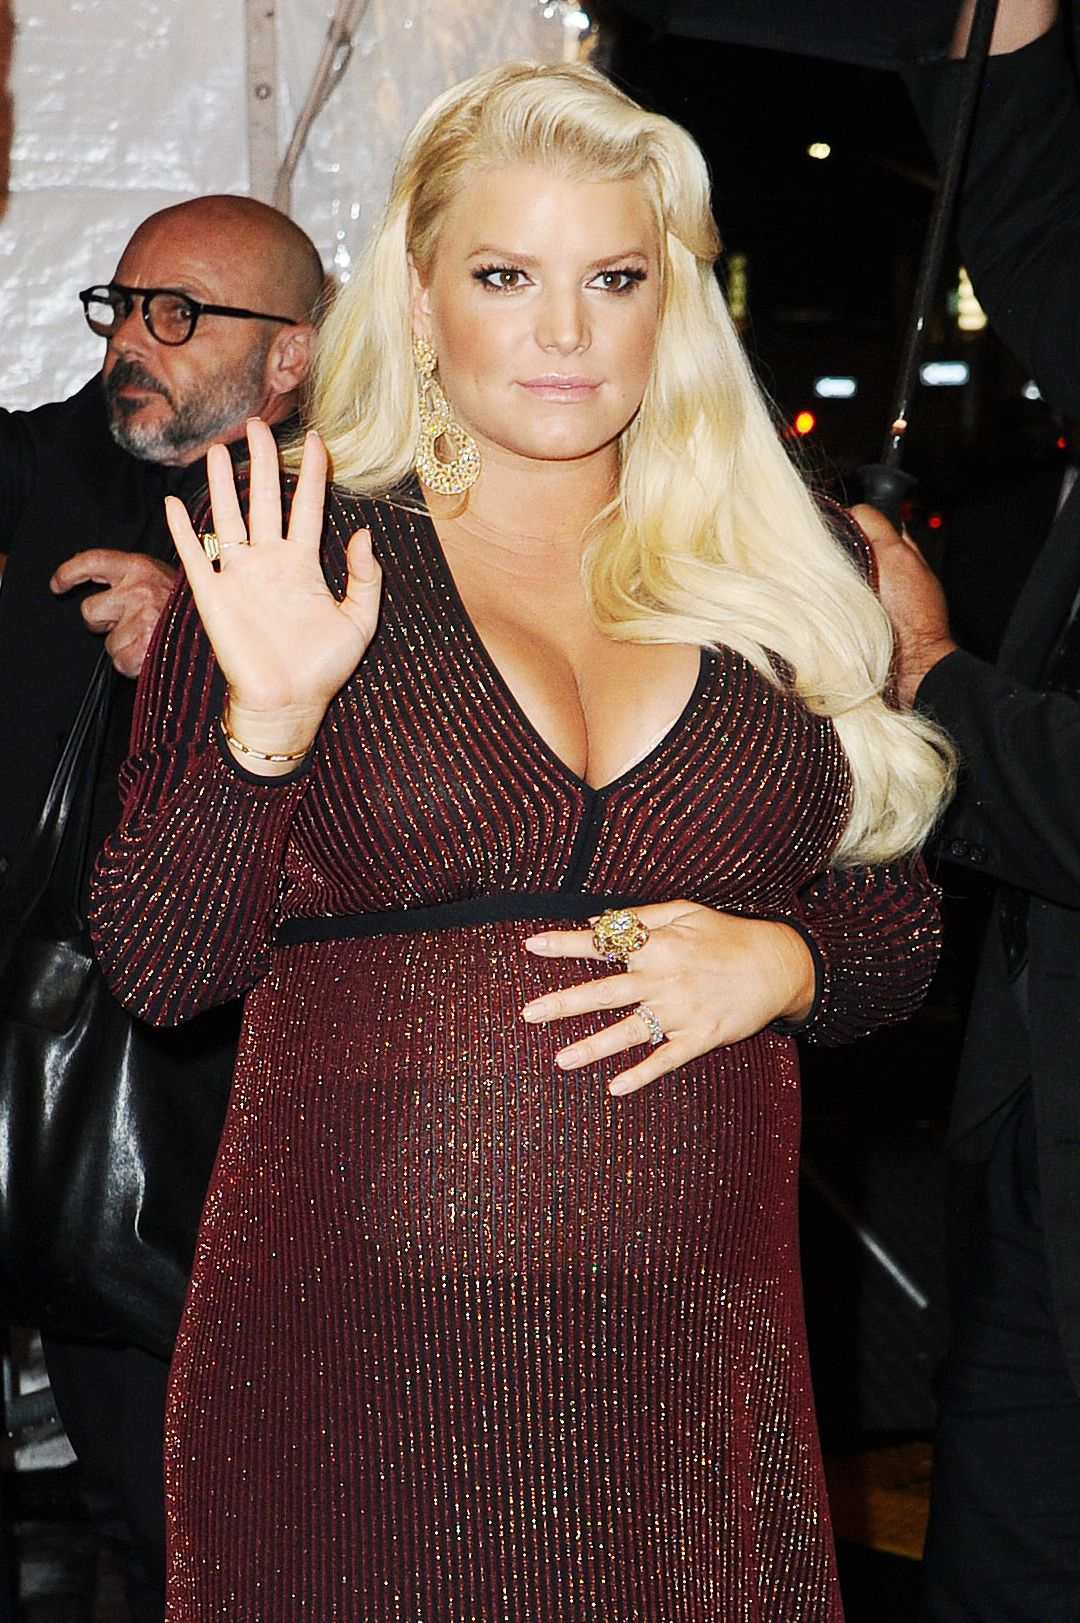 Jessica Simpson Just Got Mom-Shamed Over A Photo Of Her Baby Sleeping On Instagram